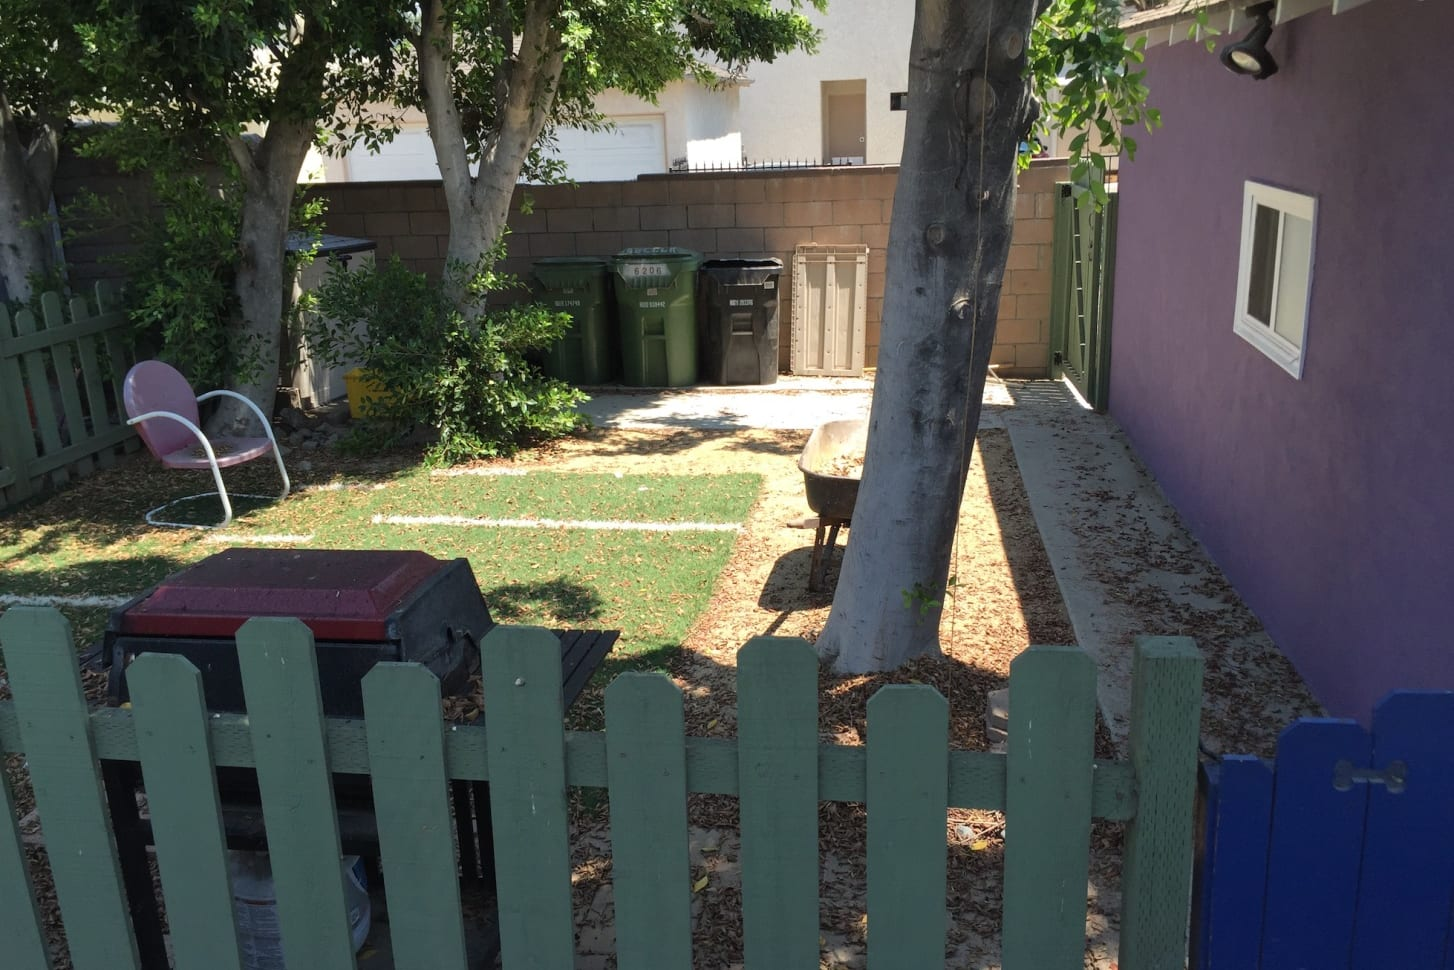 Guest homes for rent in los angeles - Tiny House Guest Cottage Gay Los Angeles Bed Breakfast To Rent In Los Angeles